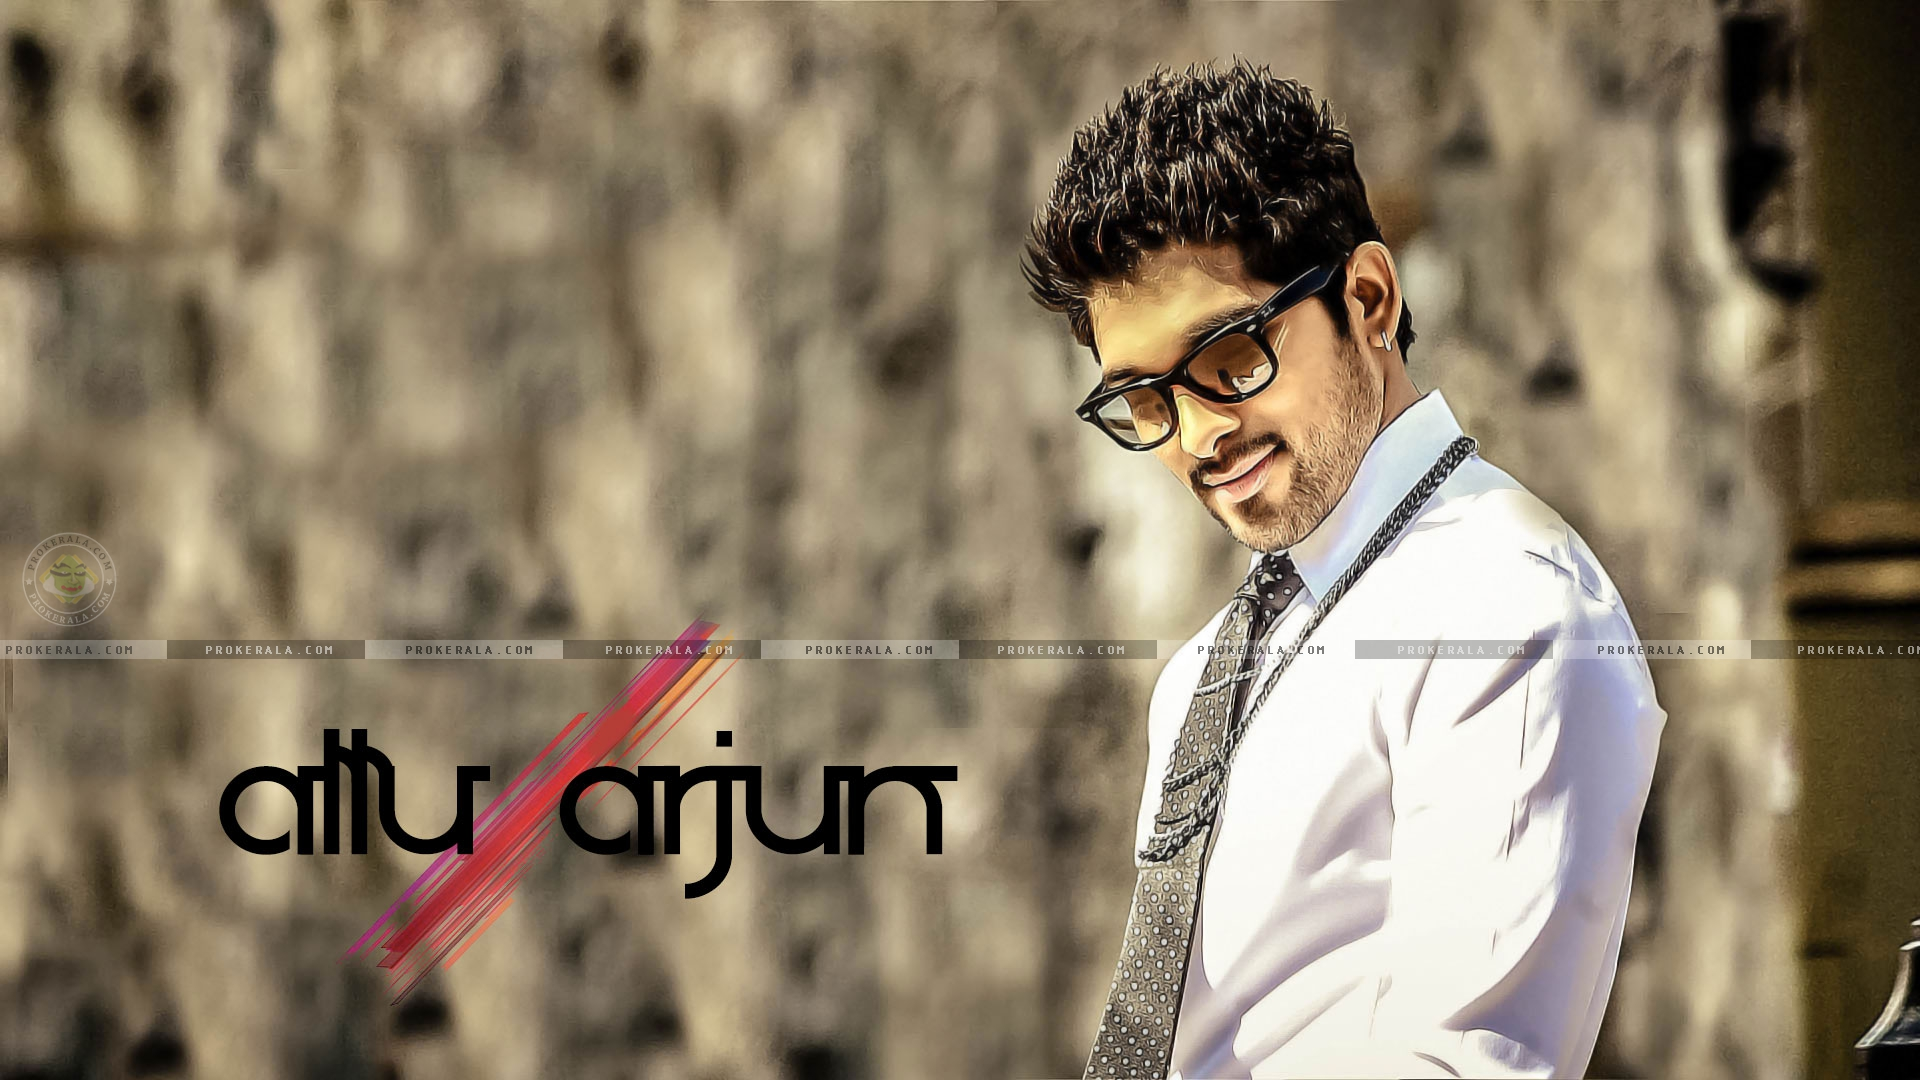 Allu arjun hd 4k wallpaper download